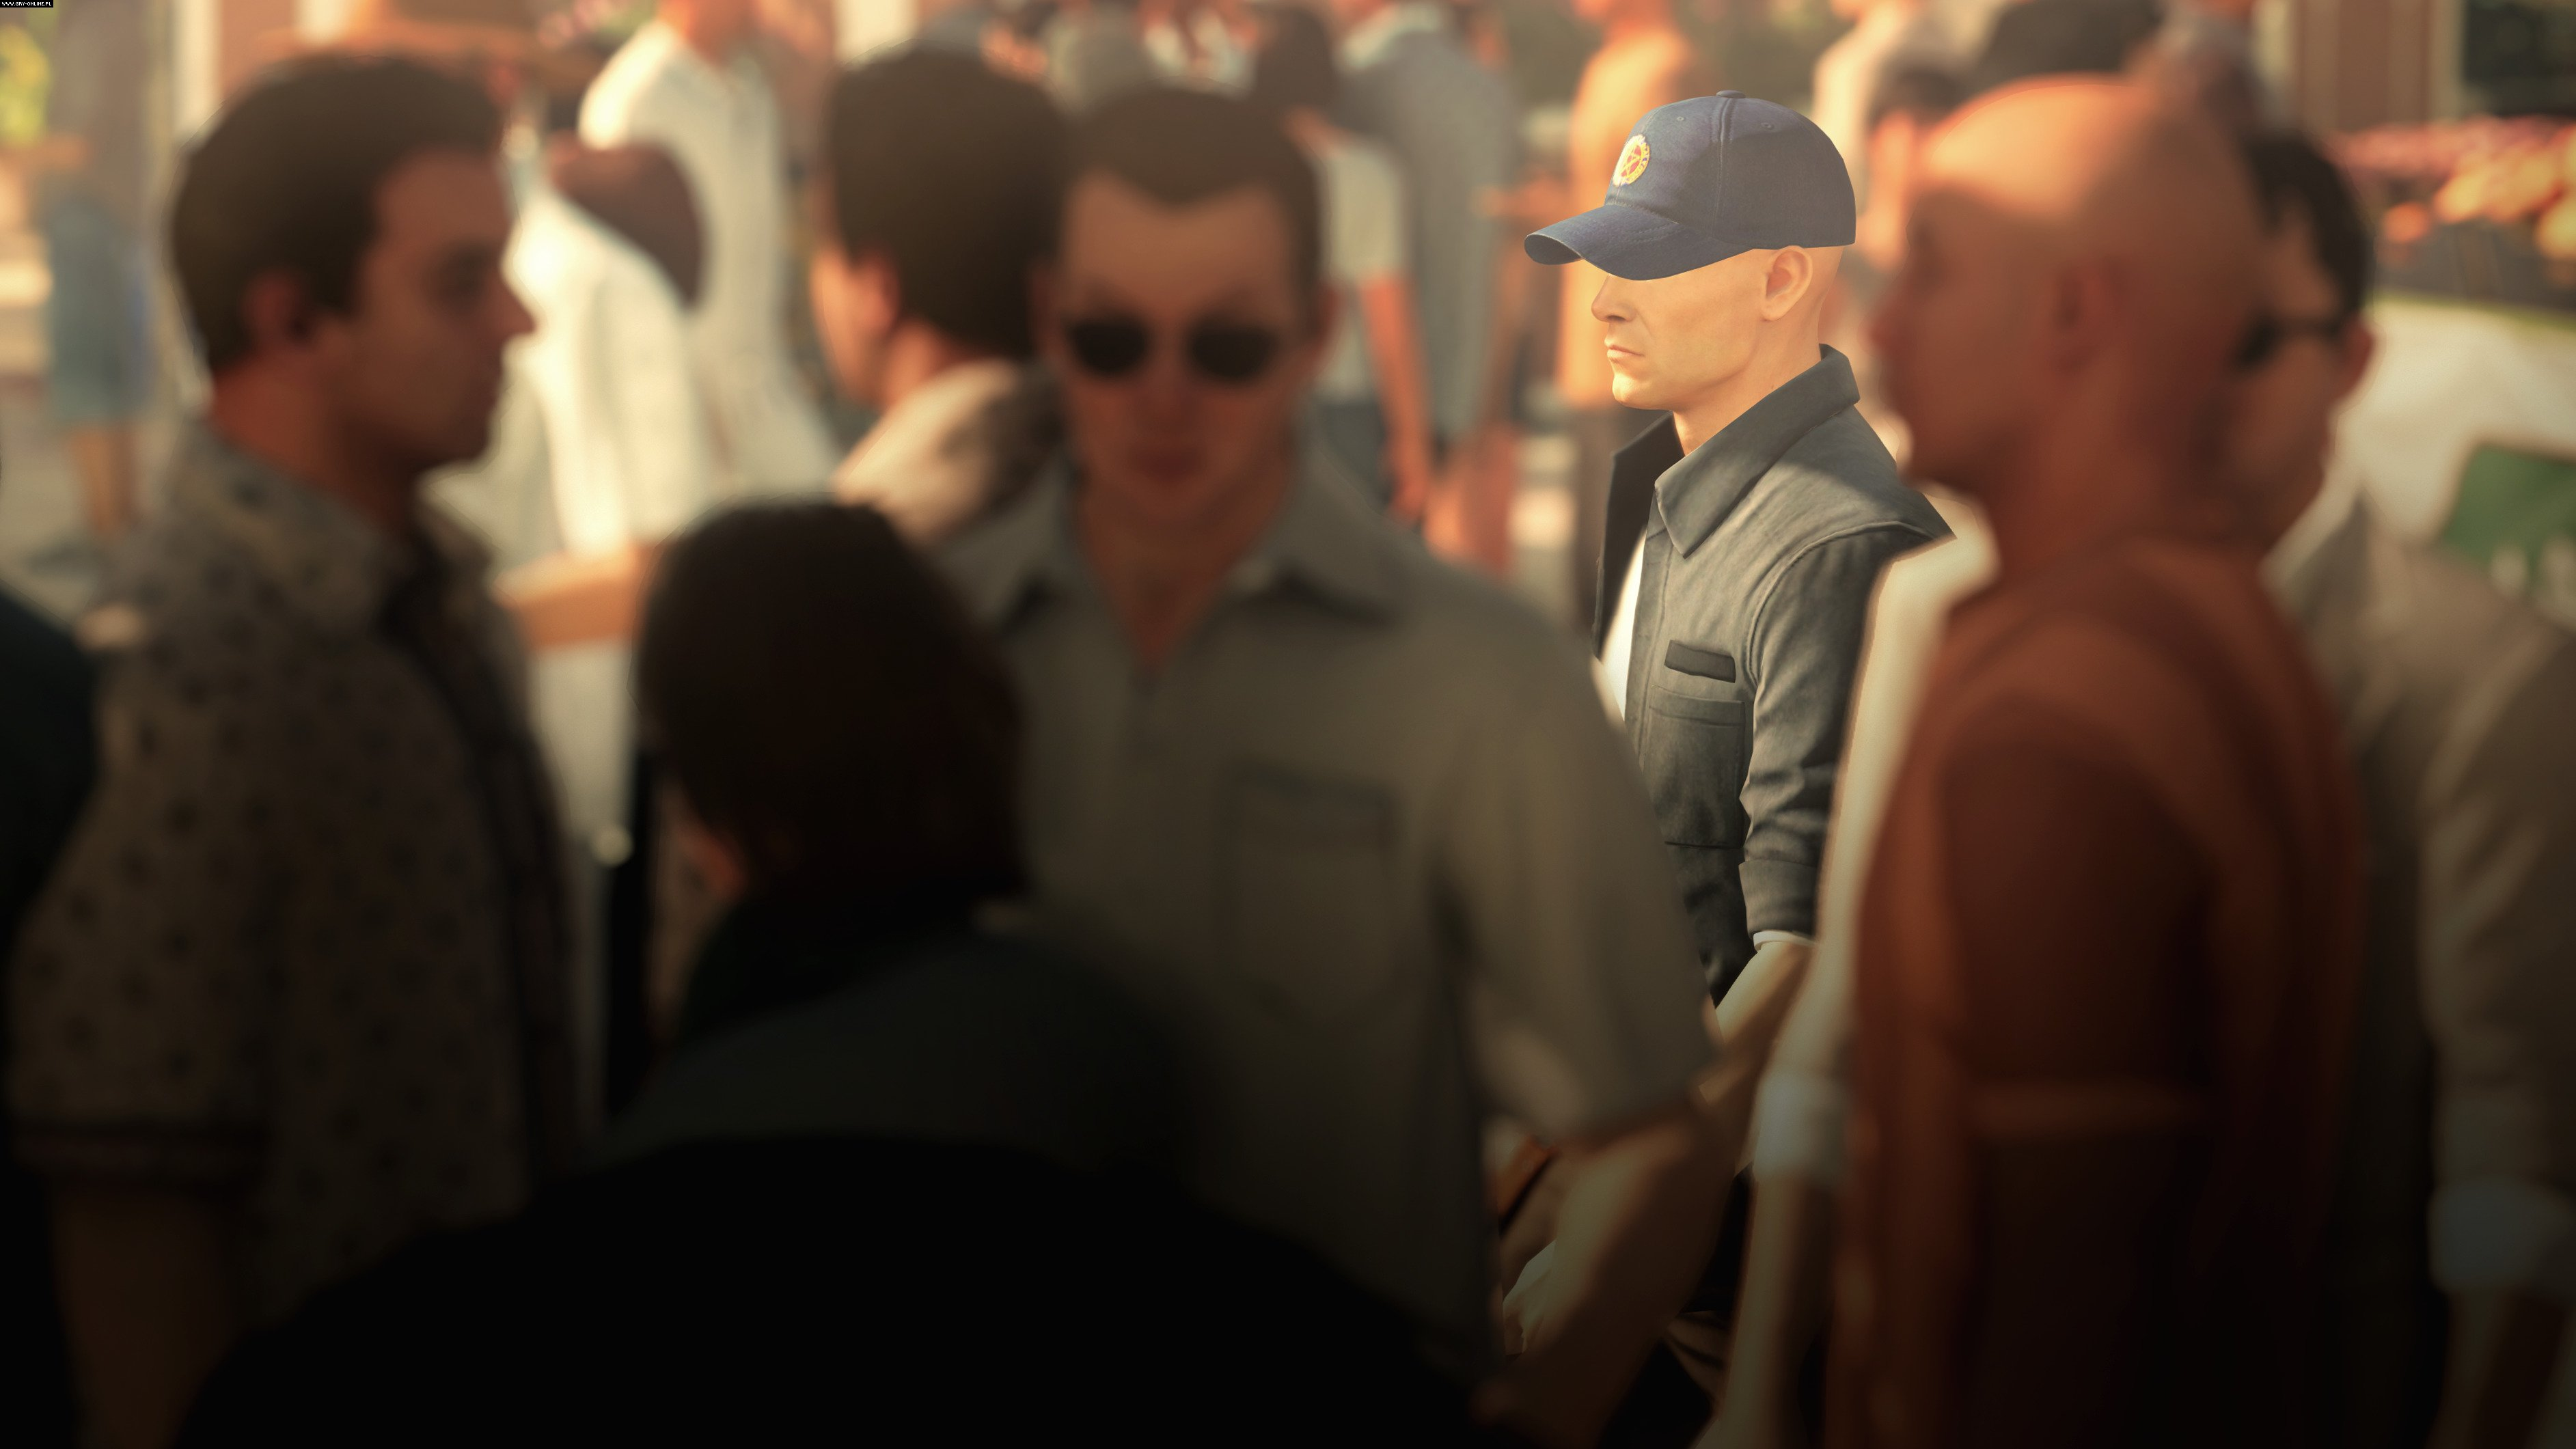 Hitman 2 PC, PS4, XONE Games Image 22/30, IO Interactive, Warner Bros. Interactive Entertainment